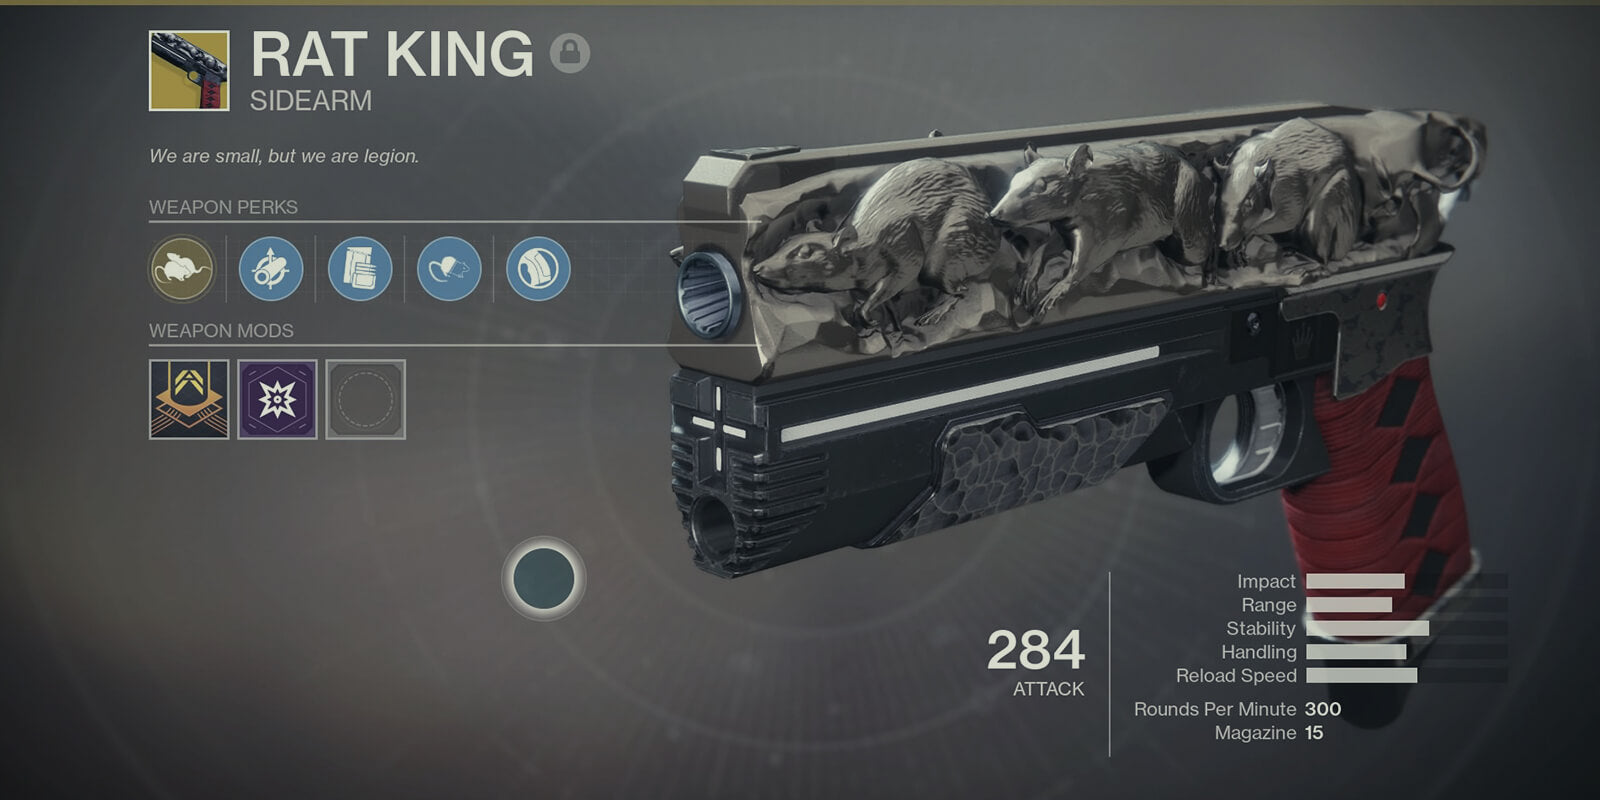 Rat King Exotic Sidearm - DestinyCarry